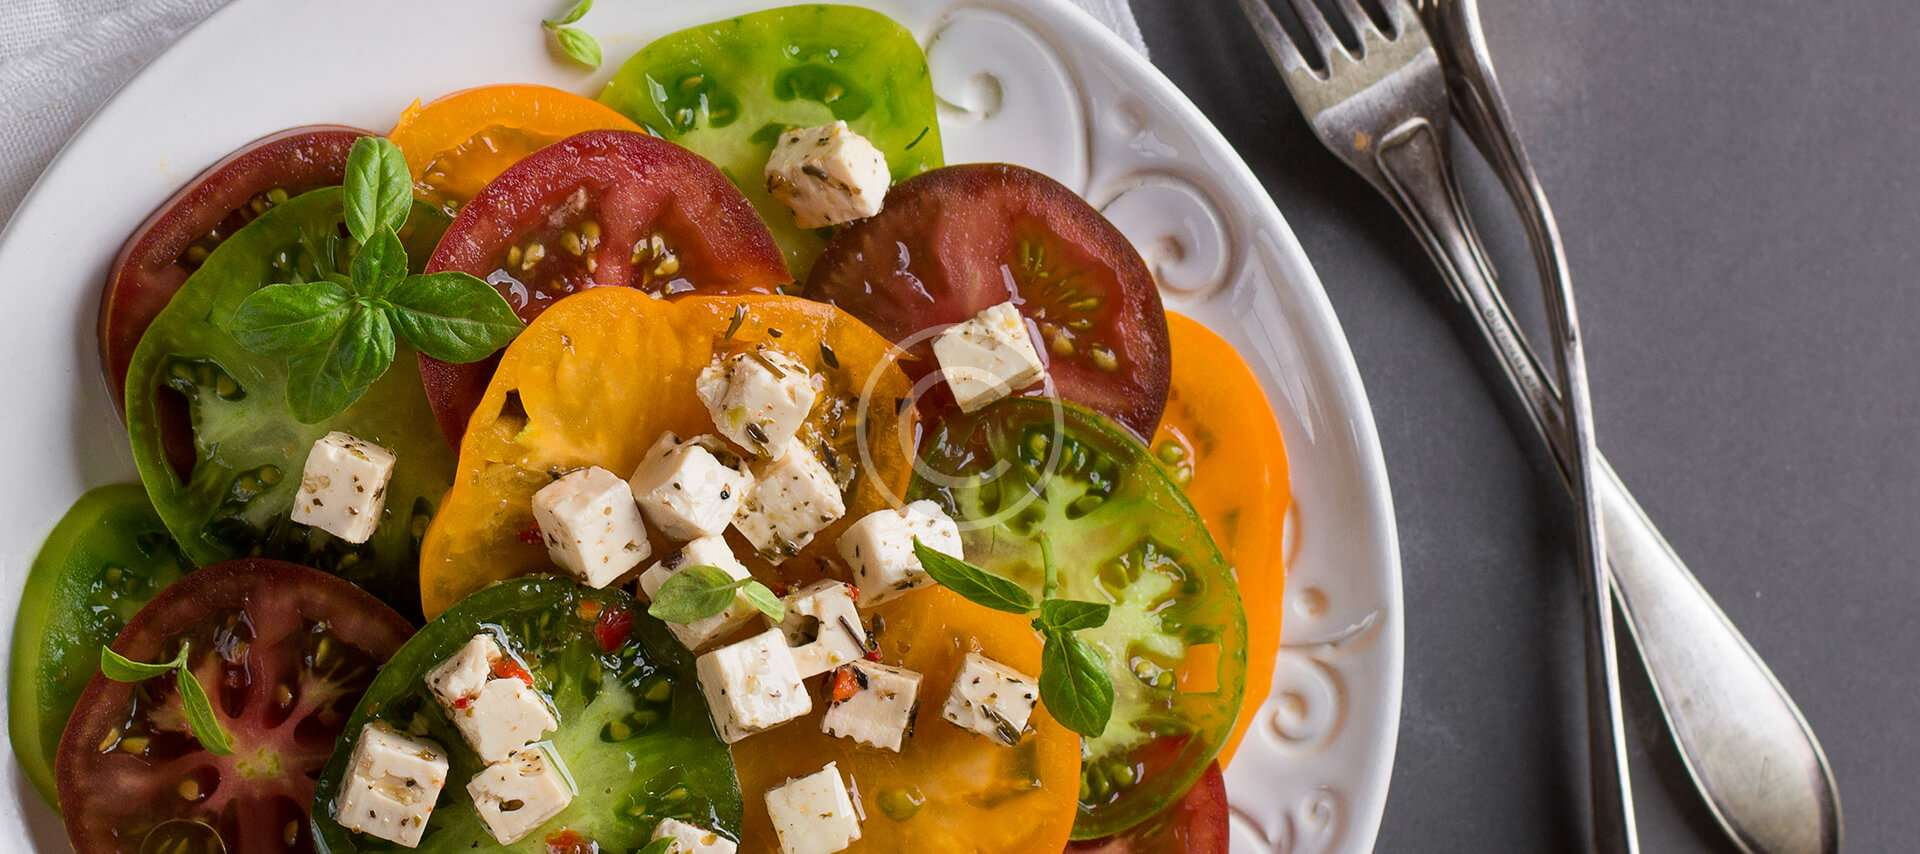 Tomato Salad with Balsamic Dressing